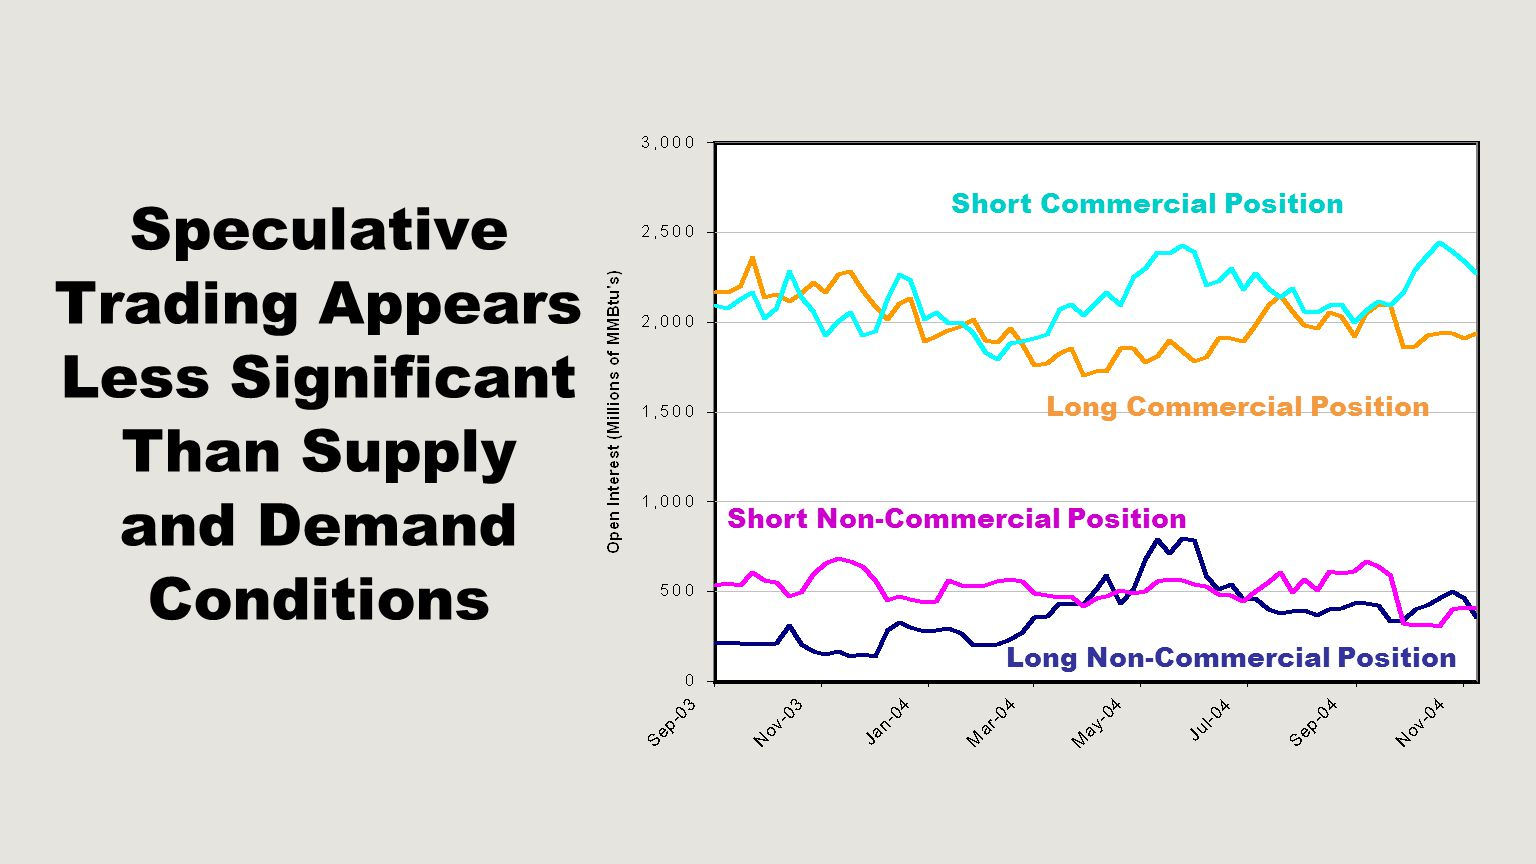 Speculative Trading Appears Less Significant Than Supply and Demand Conditions Short Commercial Position Long Commercial Position Long Non-Commercial